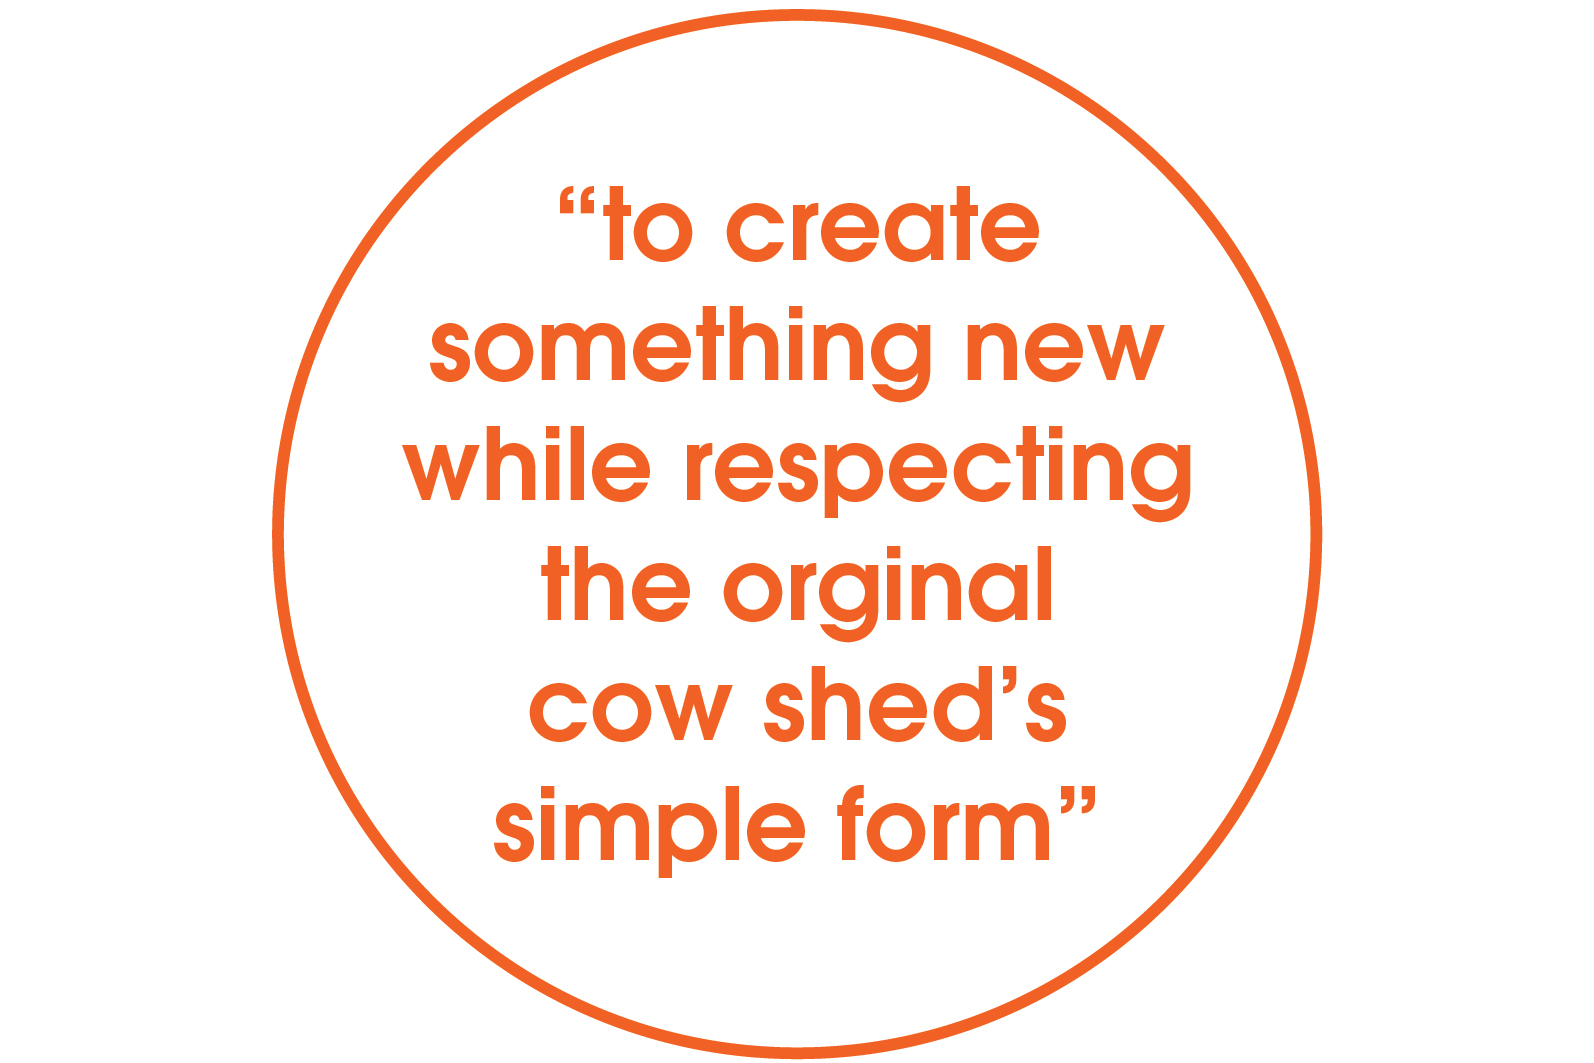 create something new while respecting original form quote